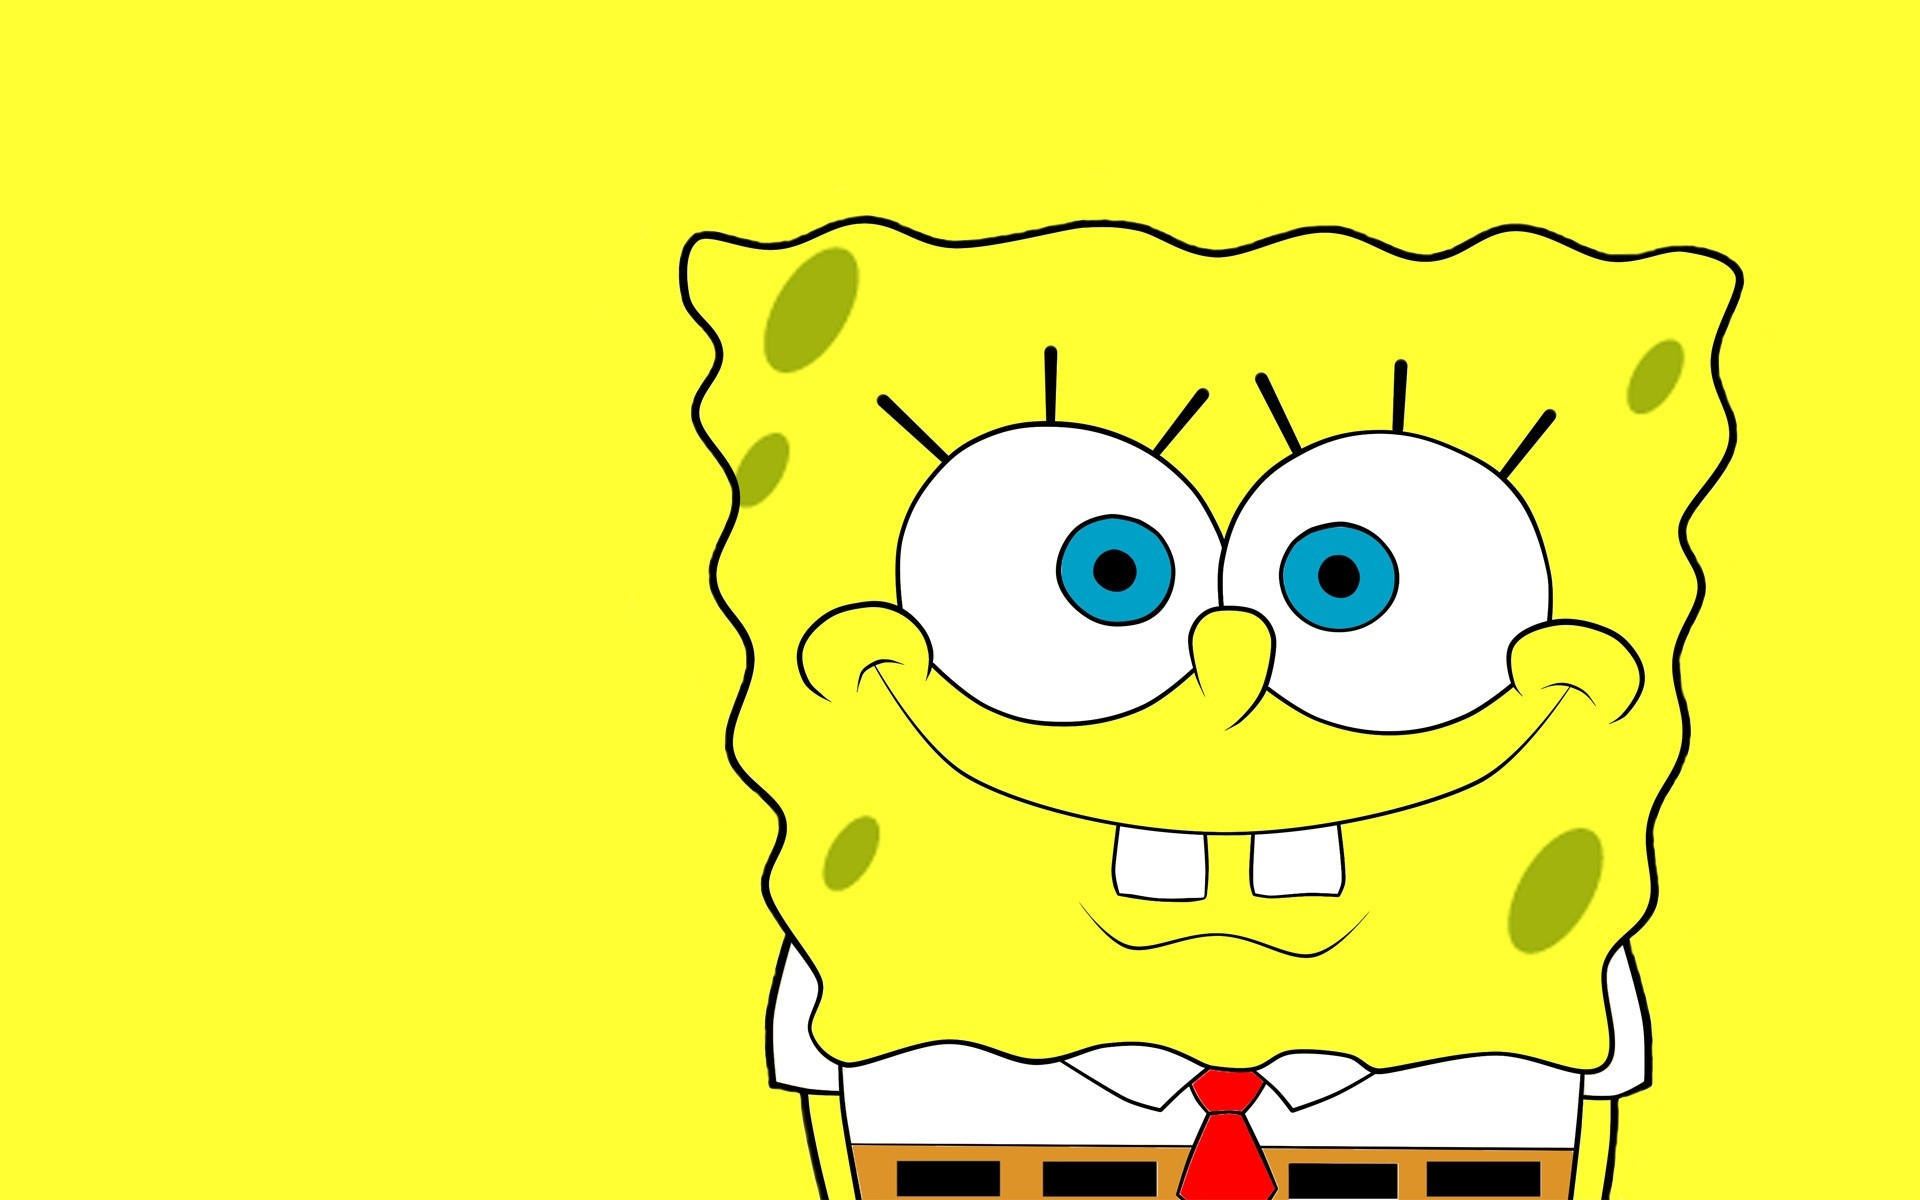 Res: 1920x1200, Simple SpongeBob SquarePants,